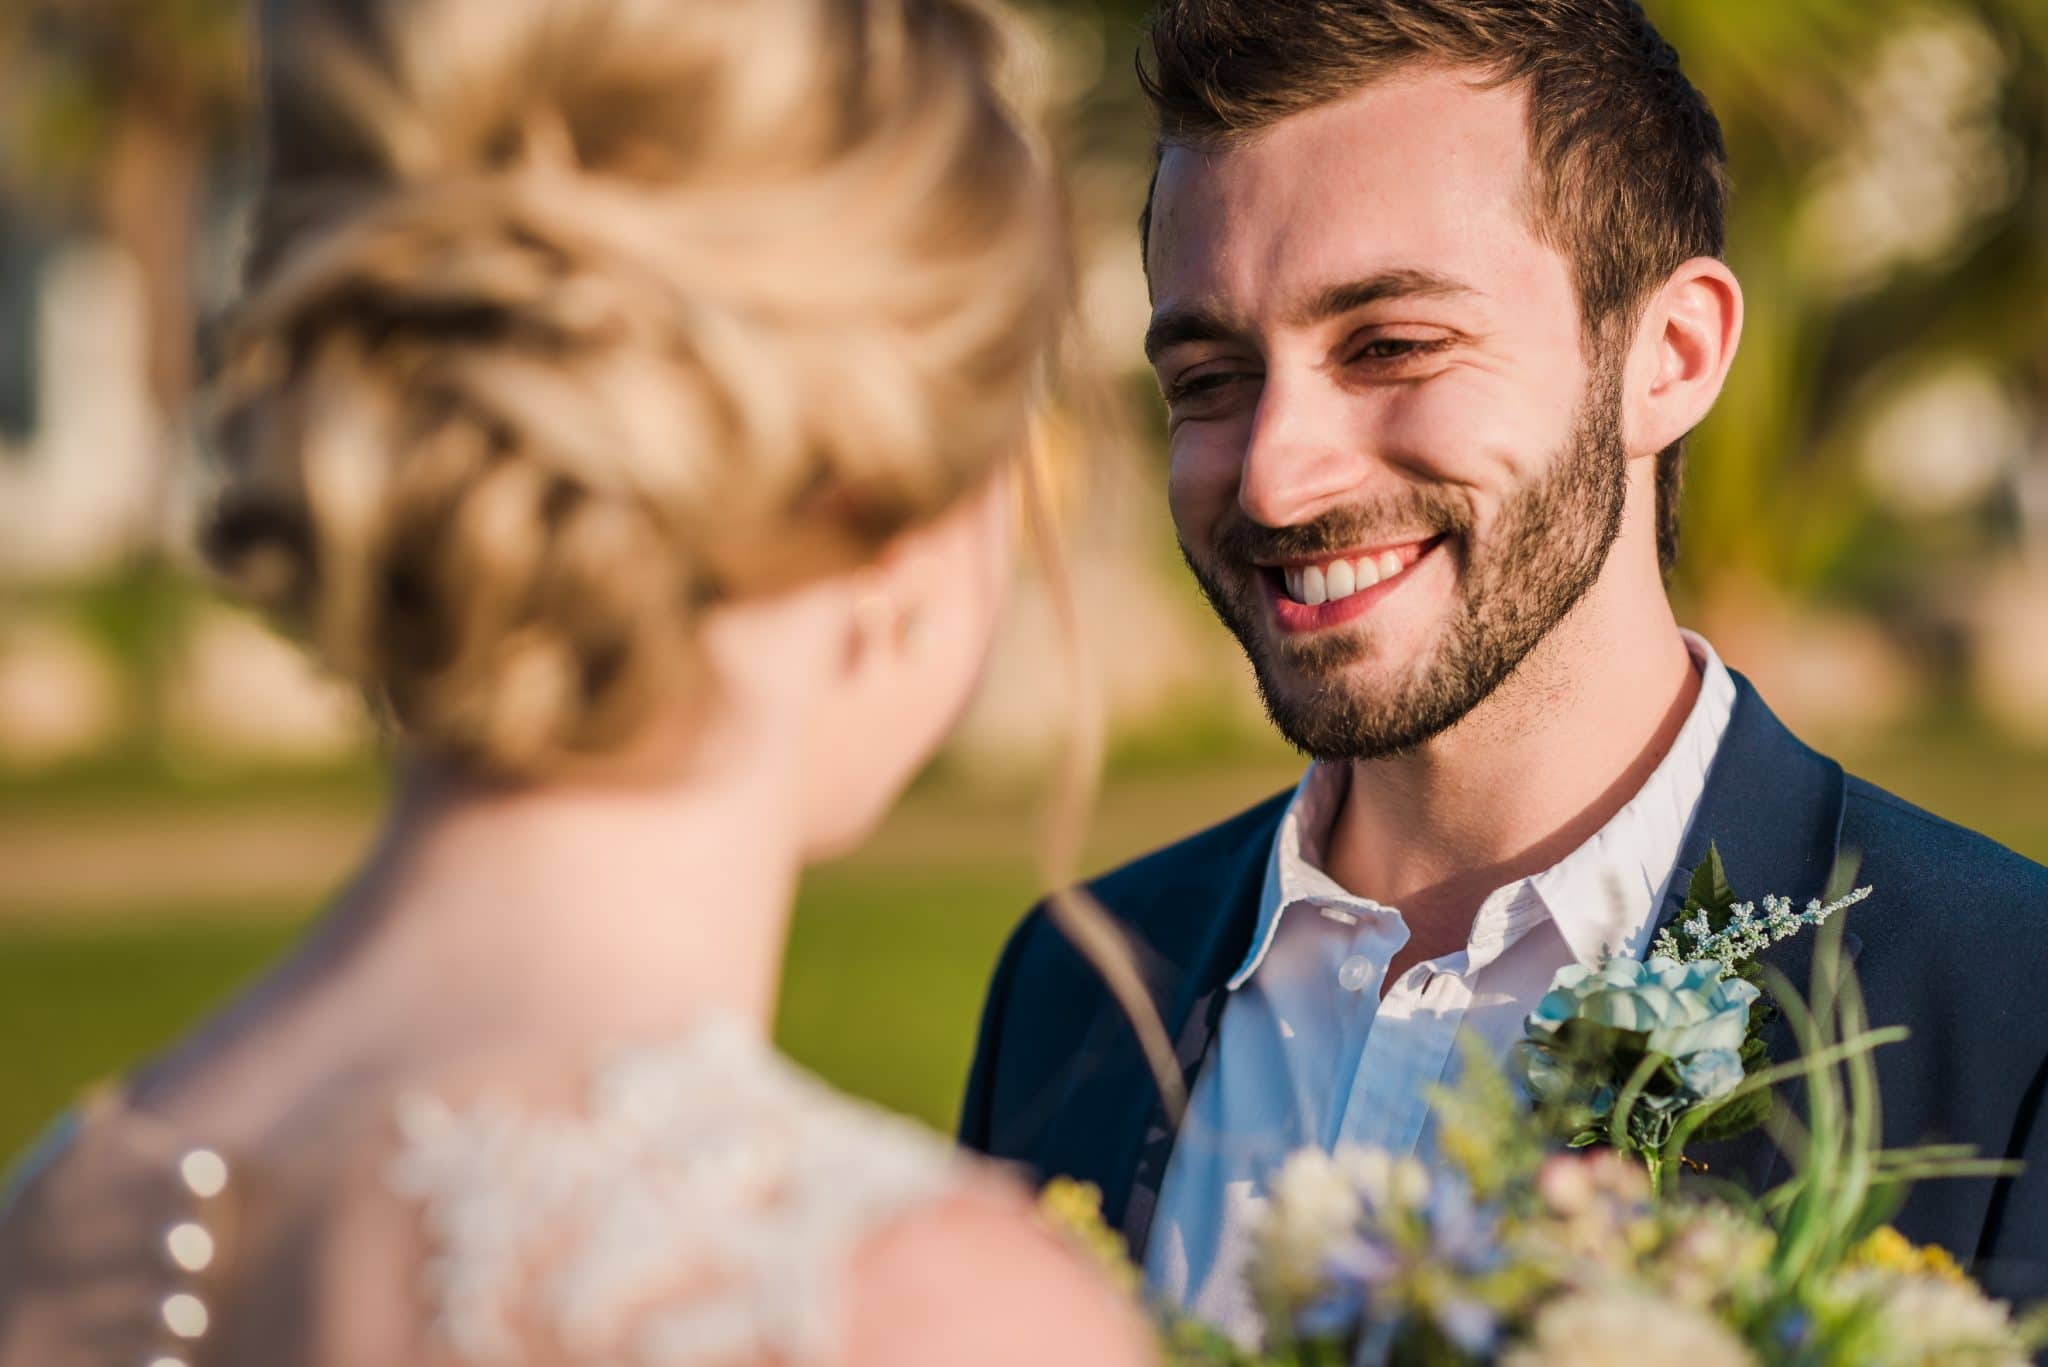 The groom smiles at his bride, great moment for a Paphos wedding photographer like me .